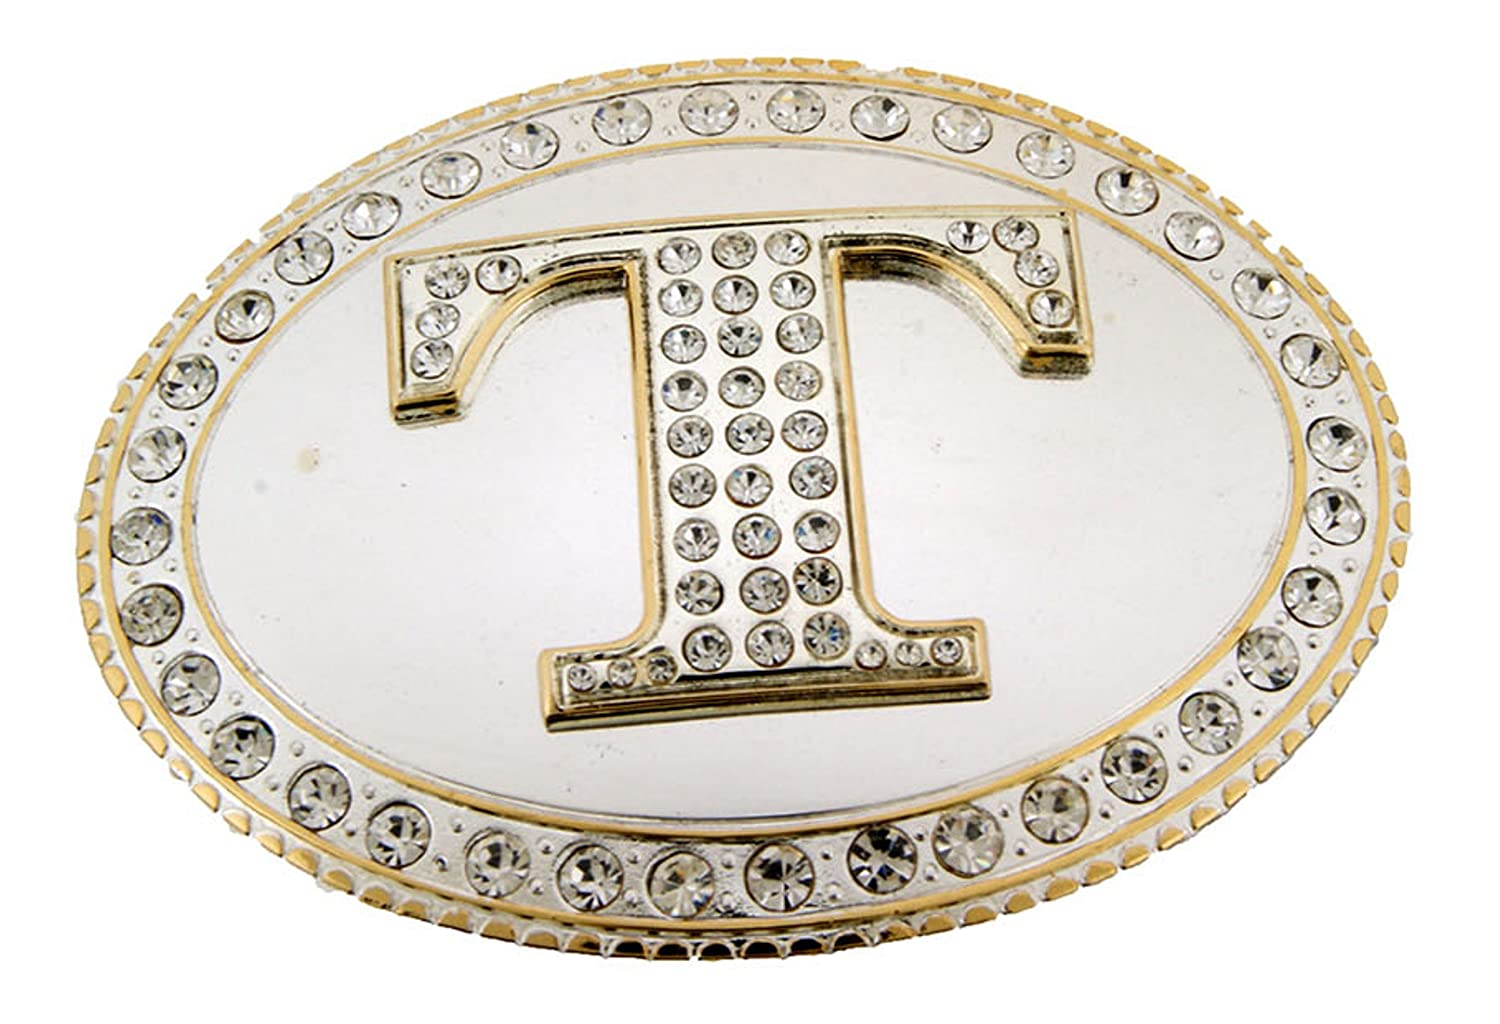 Initial Letter T Western Style Cowboy Rodeo Shiny Costume Halloween Belt Buckle